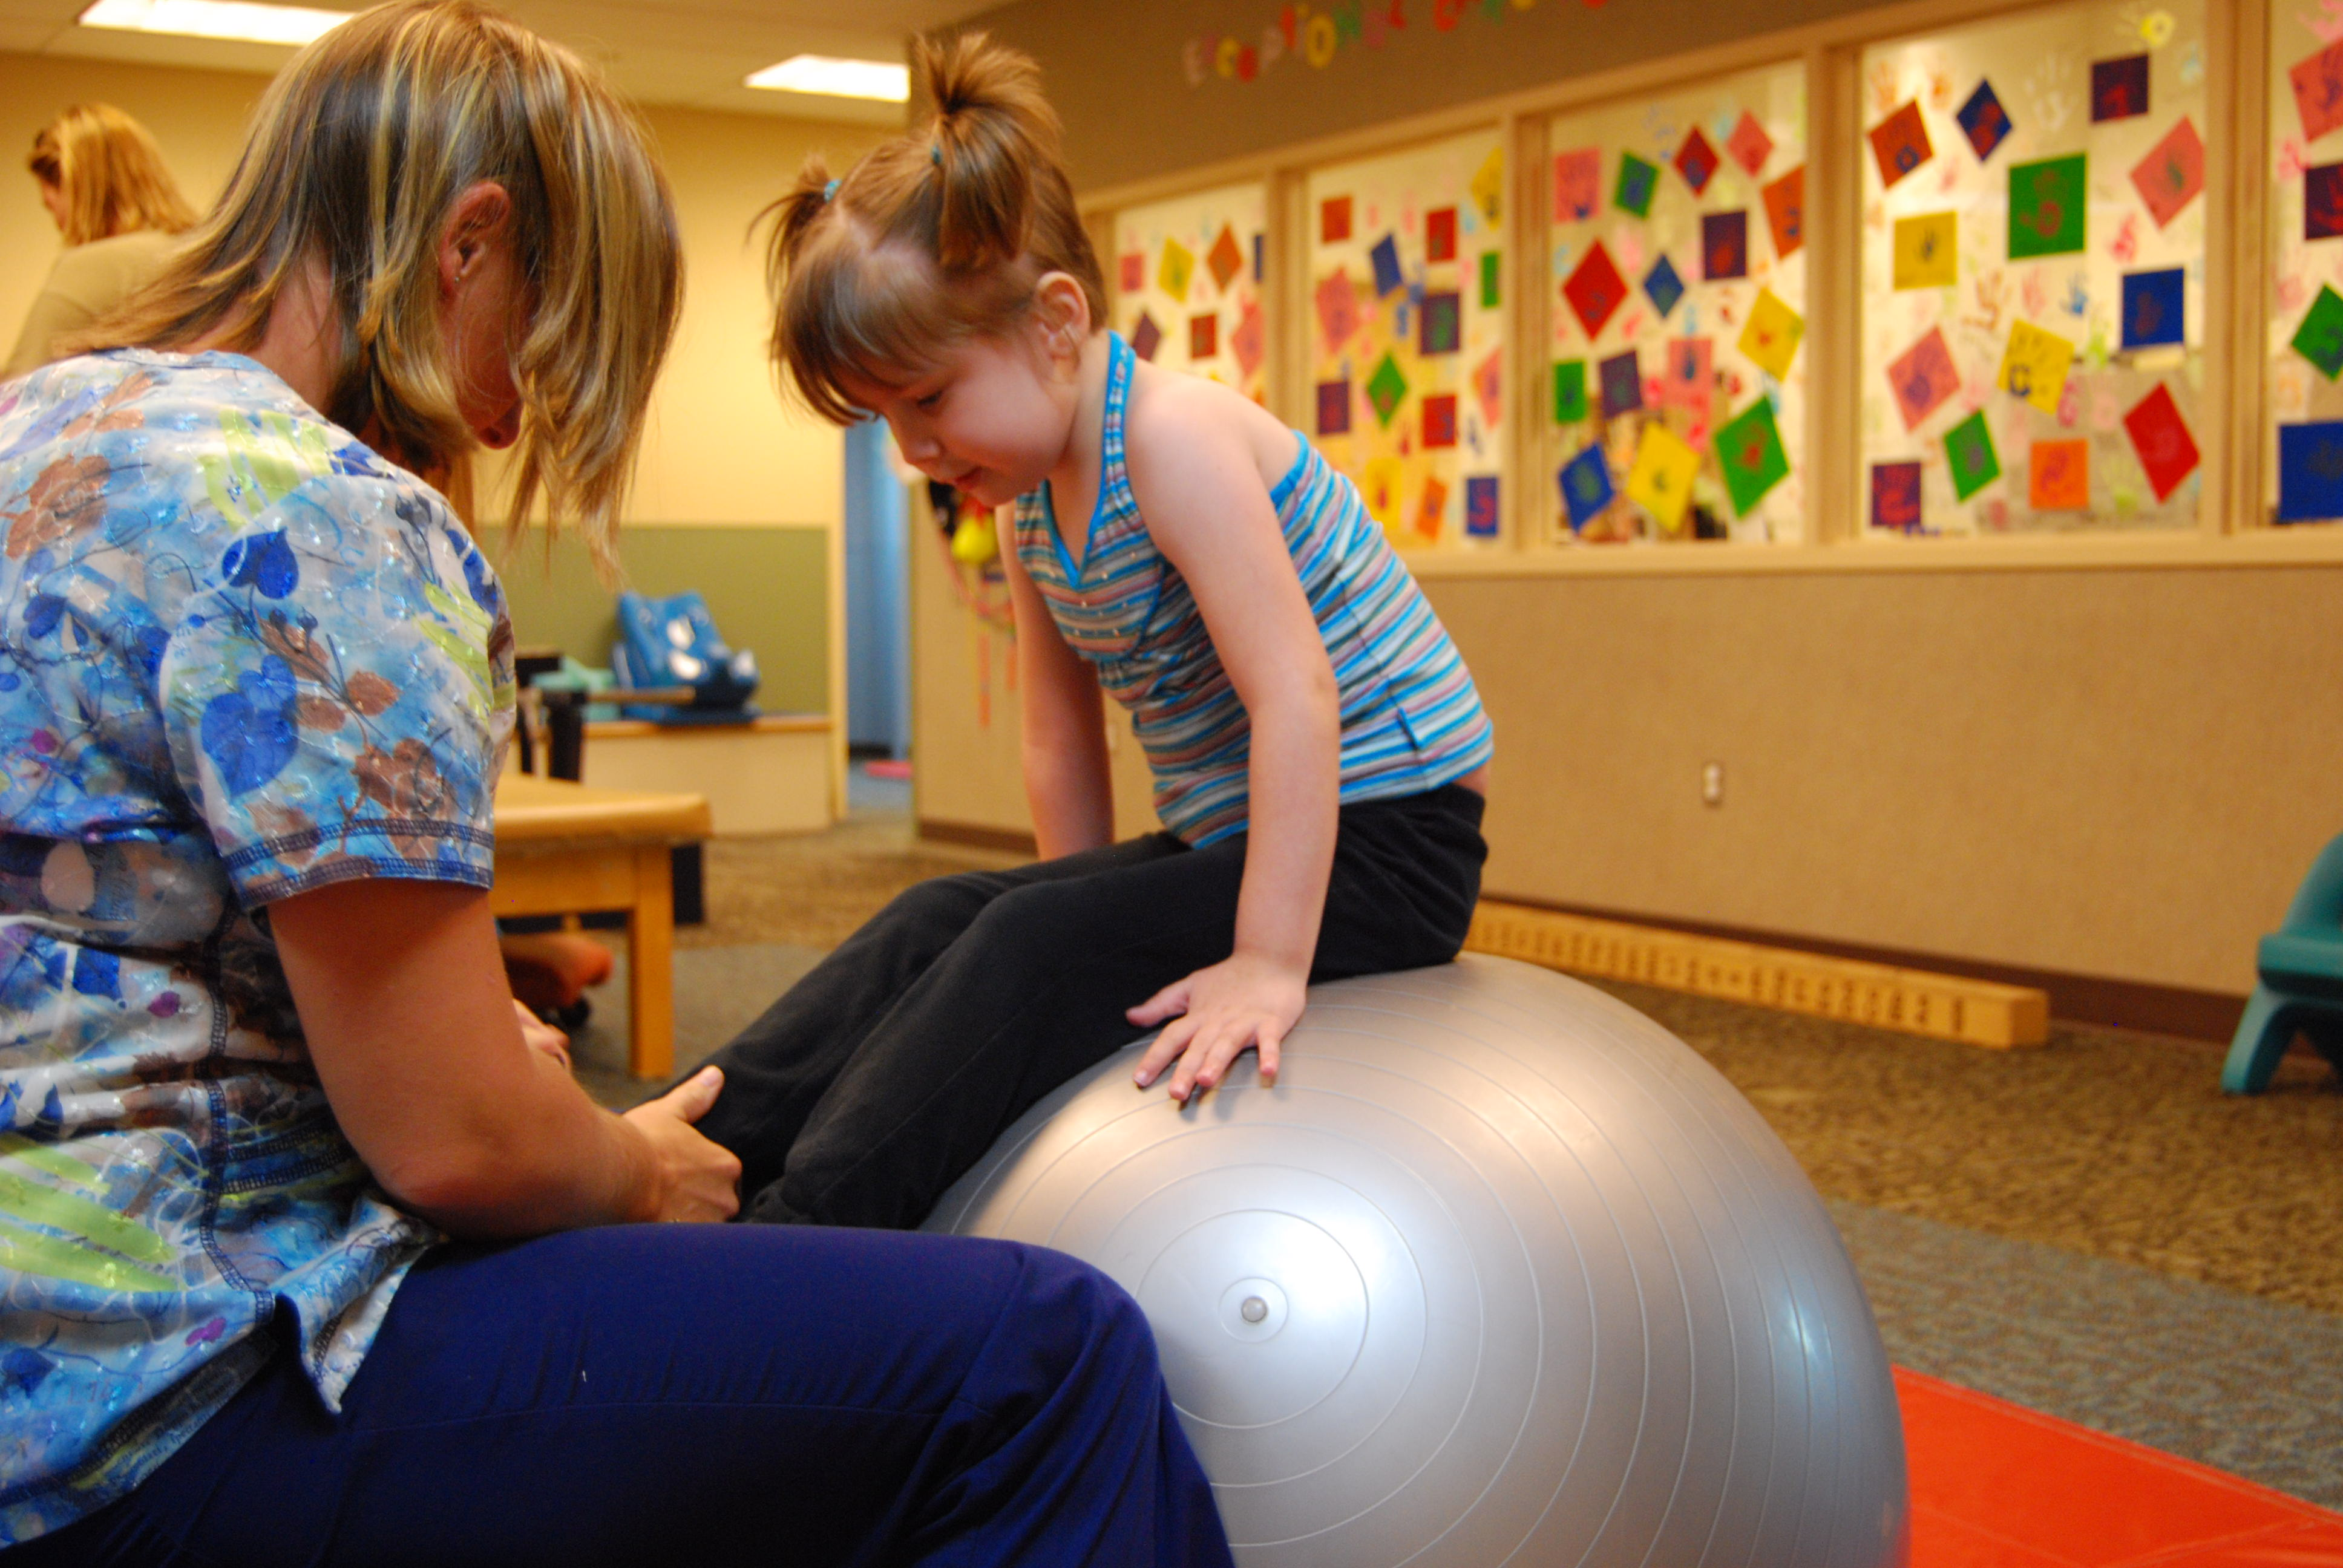 Cerebral palsy physical therapy - As Promised